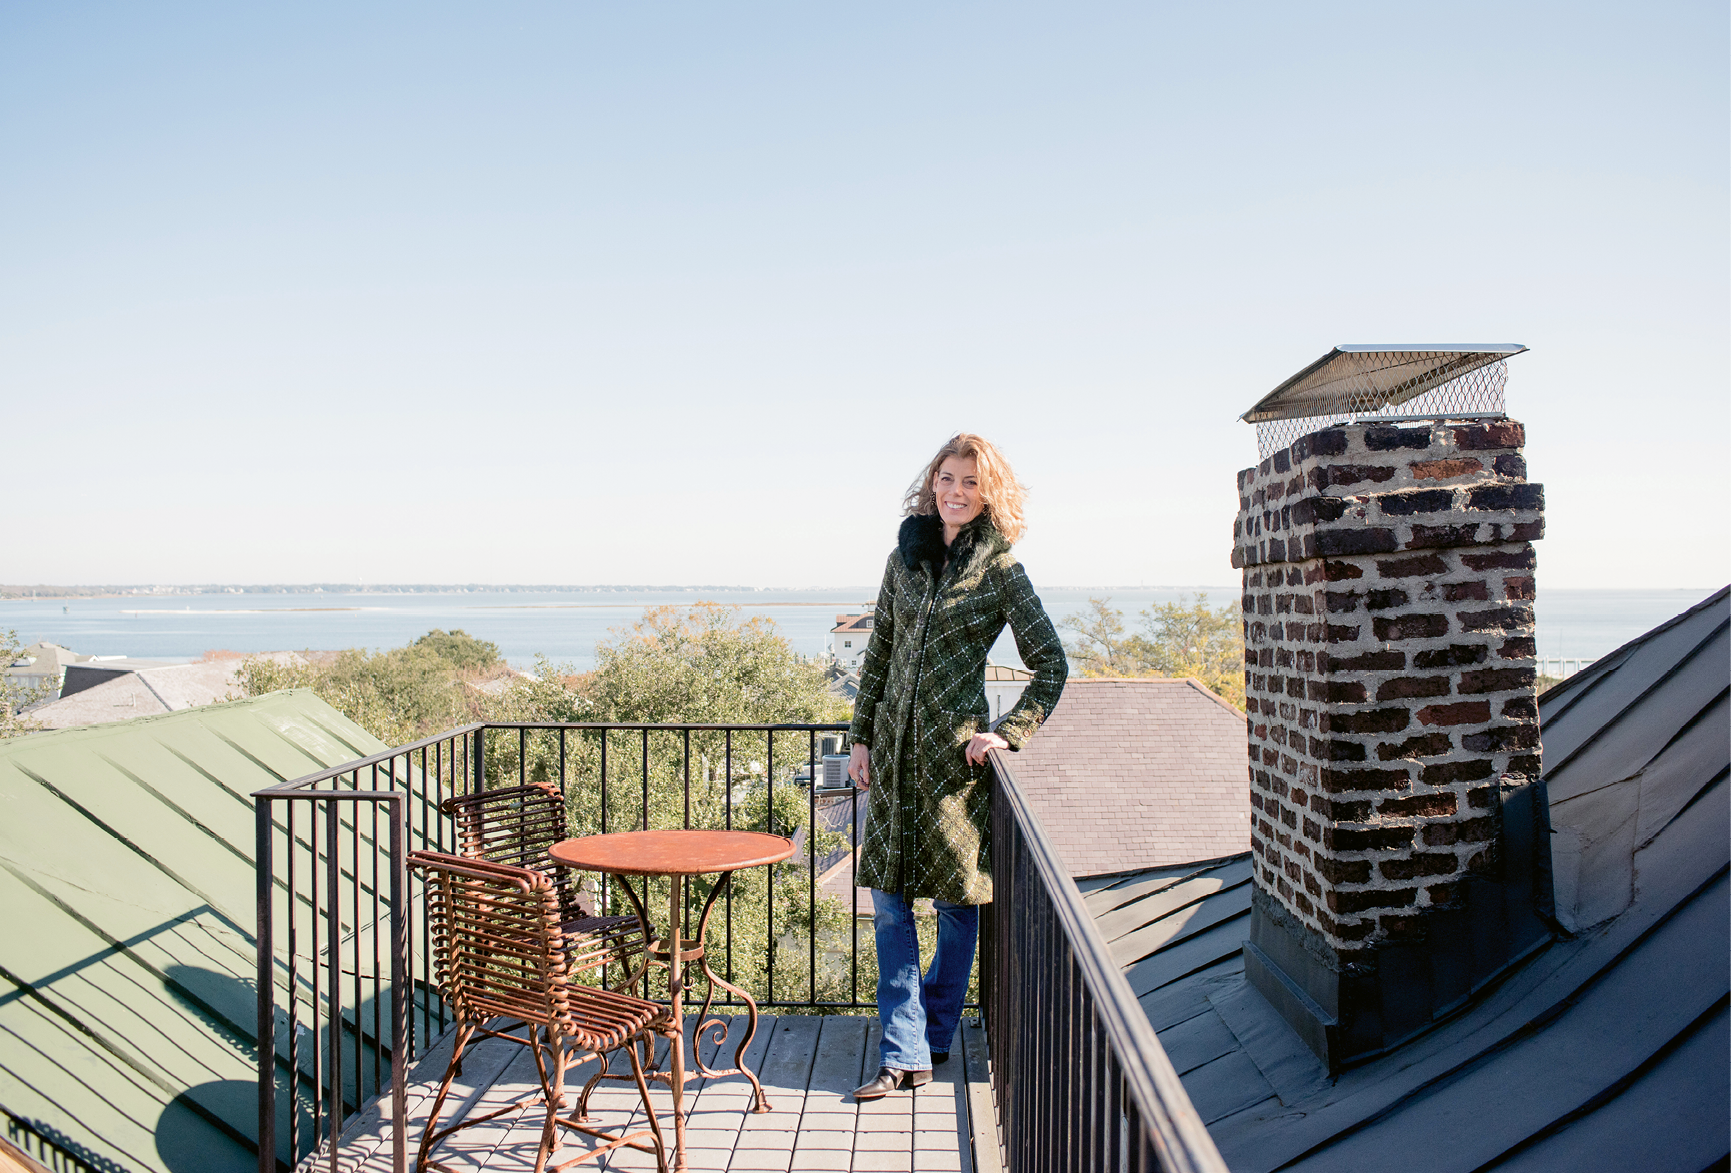 THE LONG VIEW: Pollak takes in some fresh air from her four-story home's petite rooftop deck, which offers stunning views of Charleston Harbor and Fort Sumter.